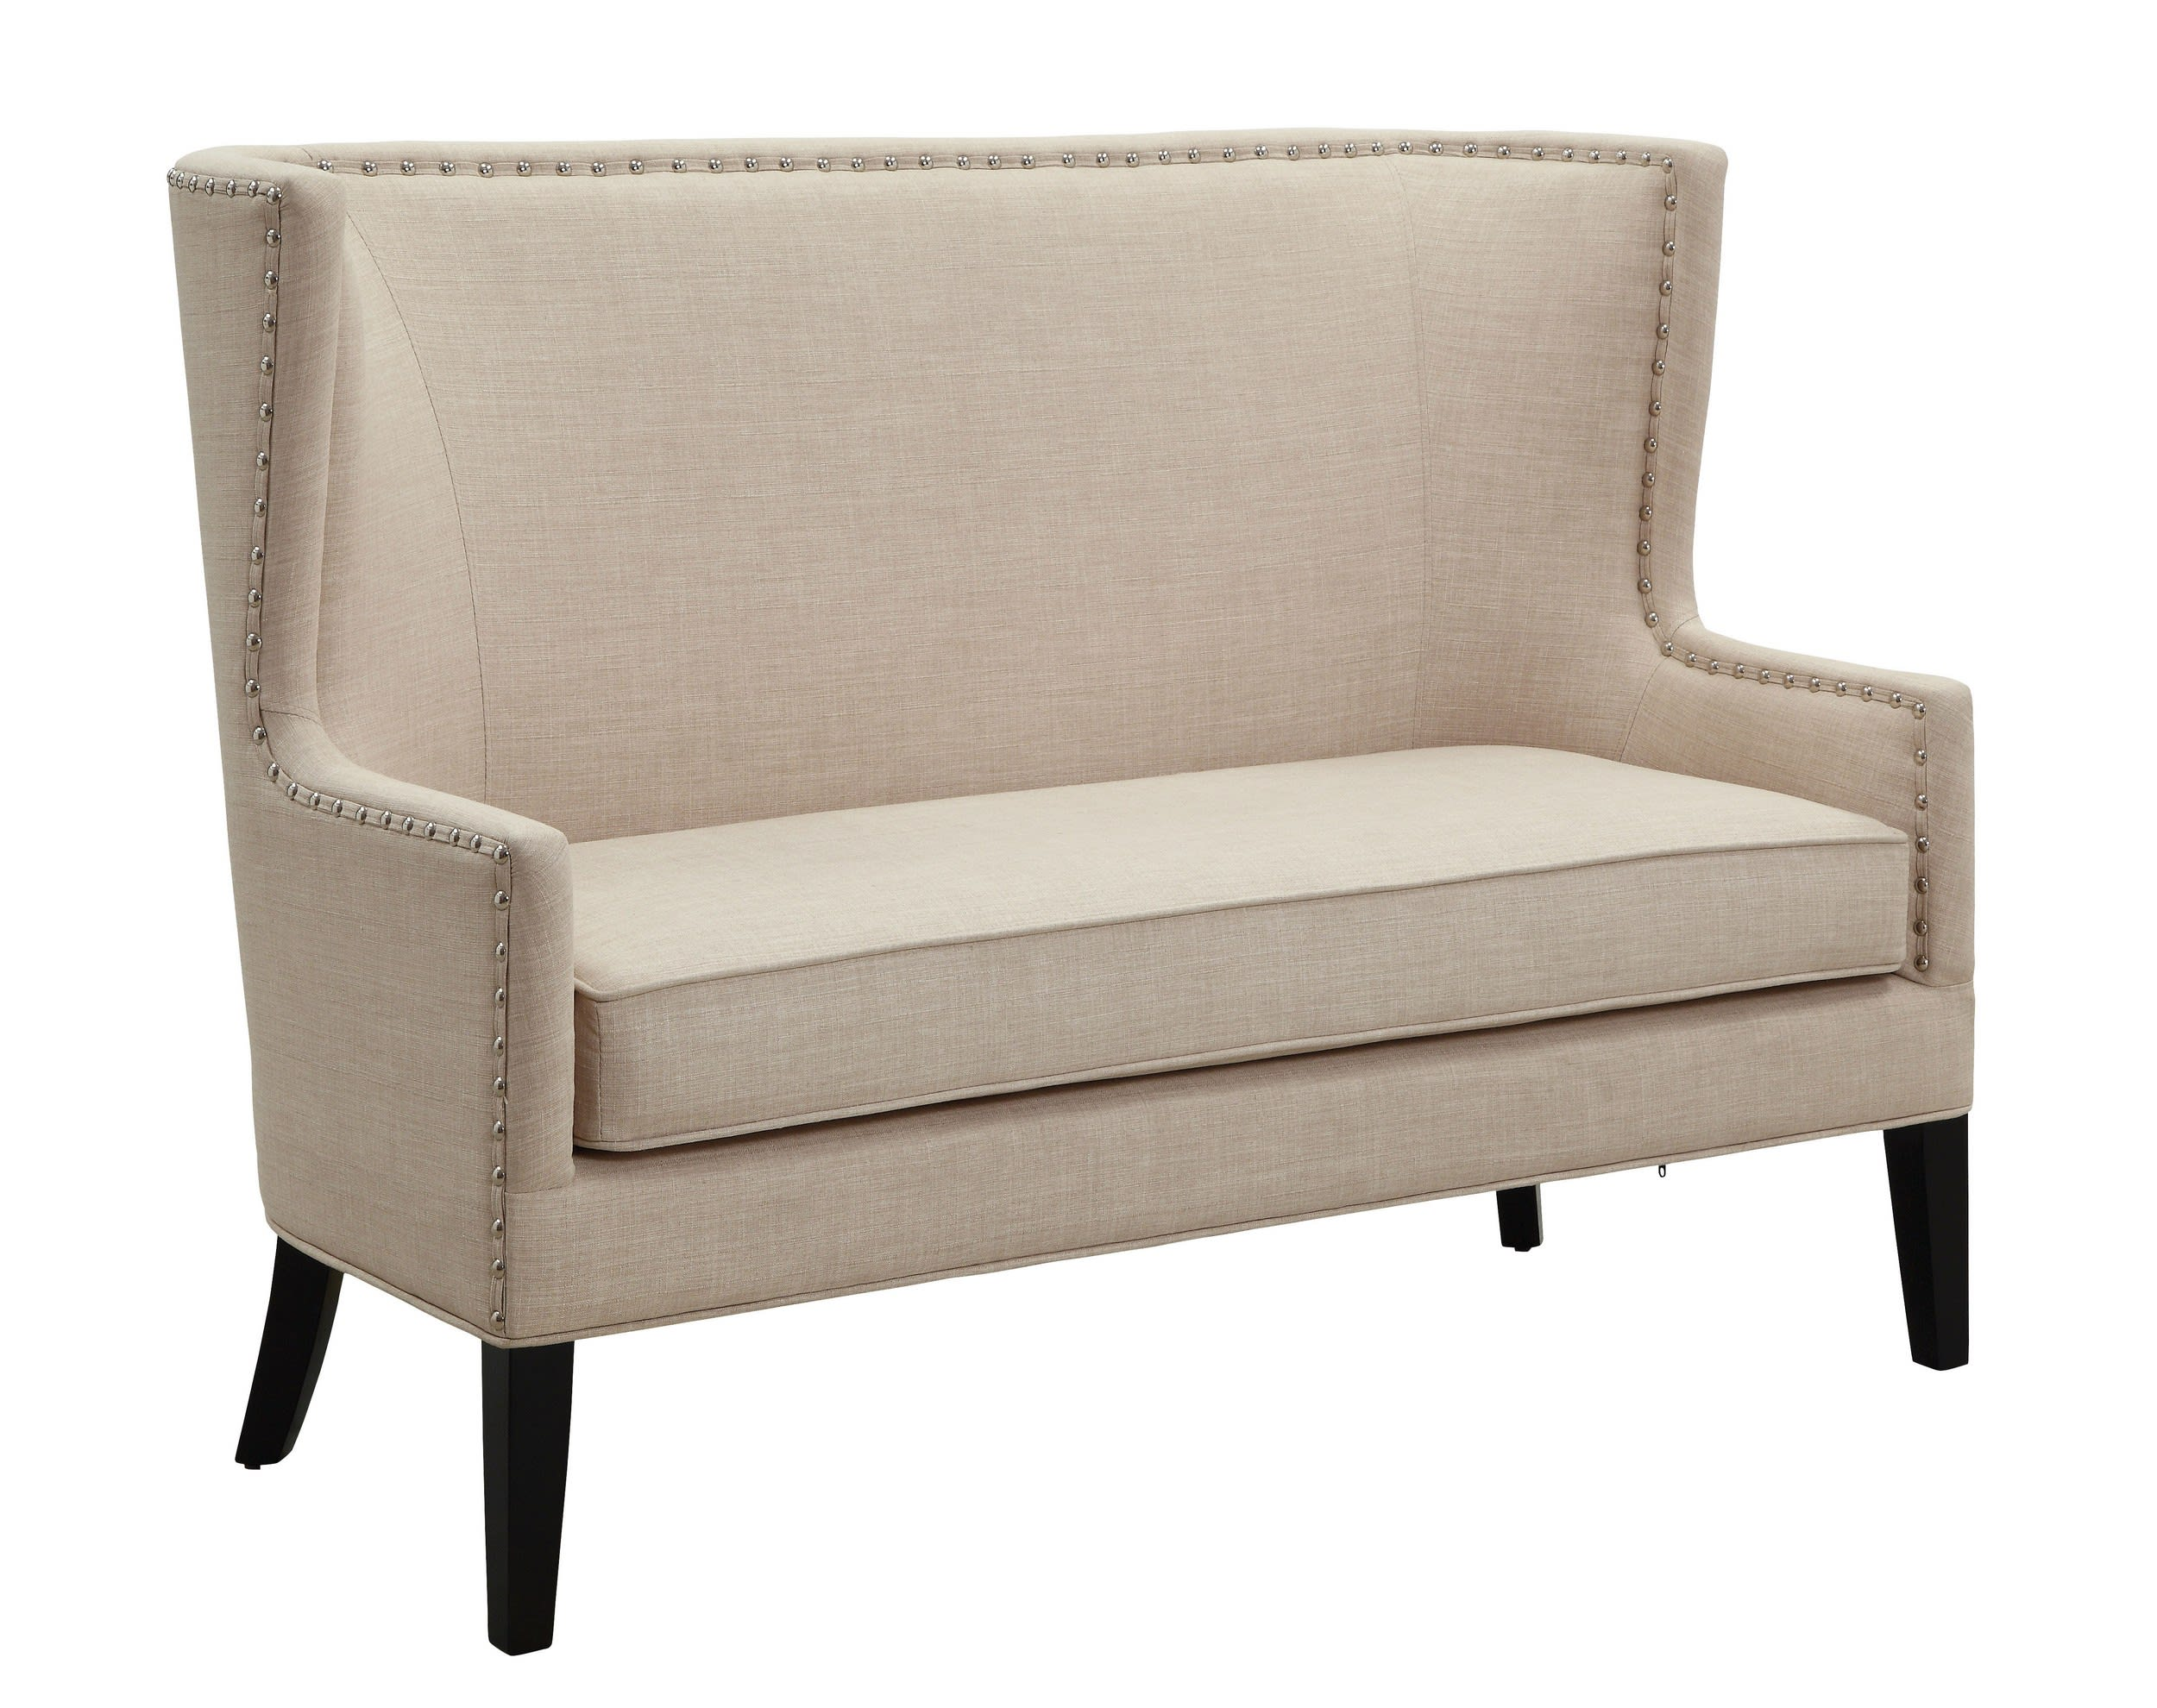 Awe Inspiring Furniture Of America Sophia Beige Contemporary Wingback Love Seat Bench Reviews Goedekers Com Pabps2019 Chair Design Images Pabps2019Com